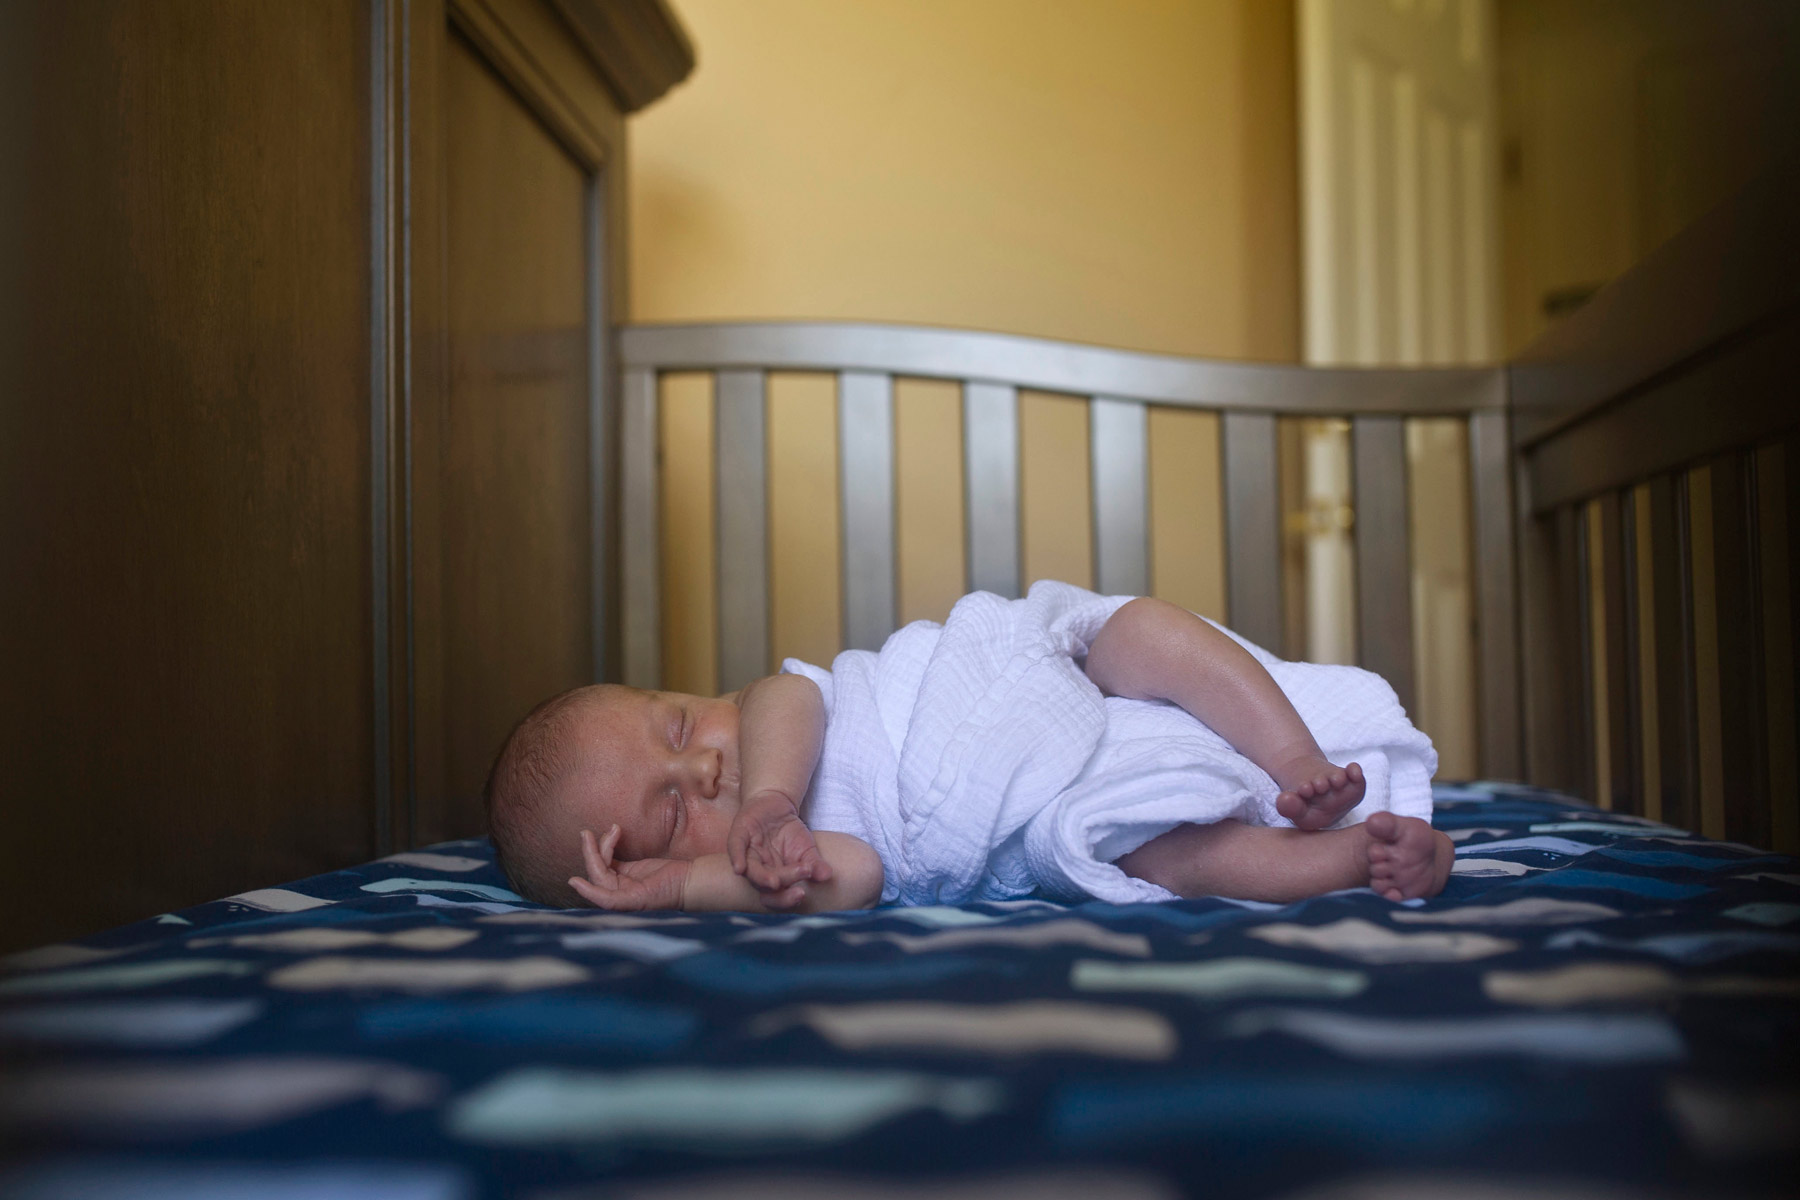 Main_Line_Newborn_photographer_Lifestyle_newborn_photographer05_sleeping_newborn.JPG